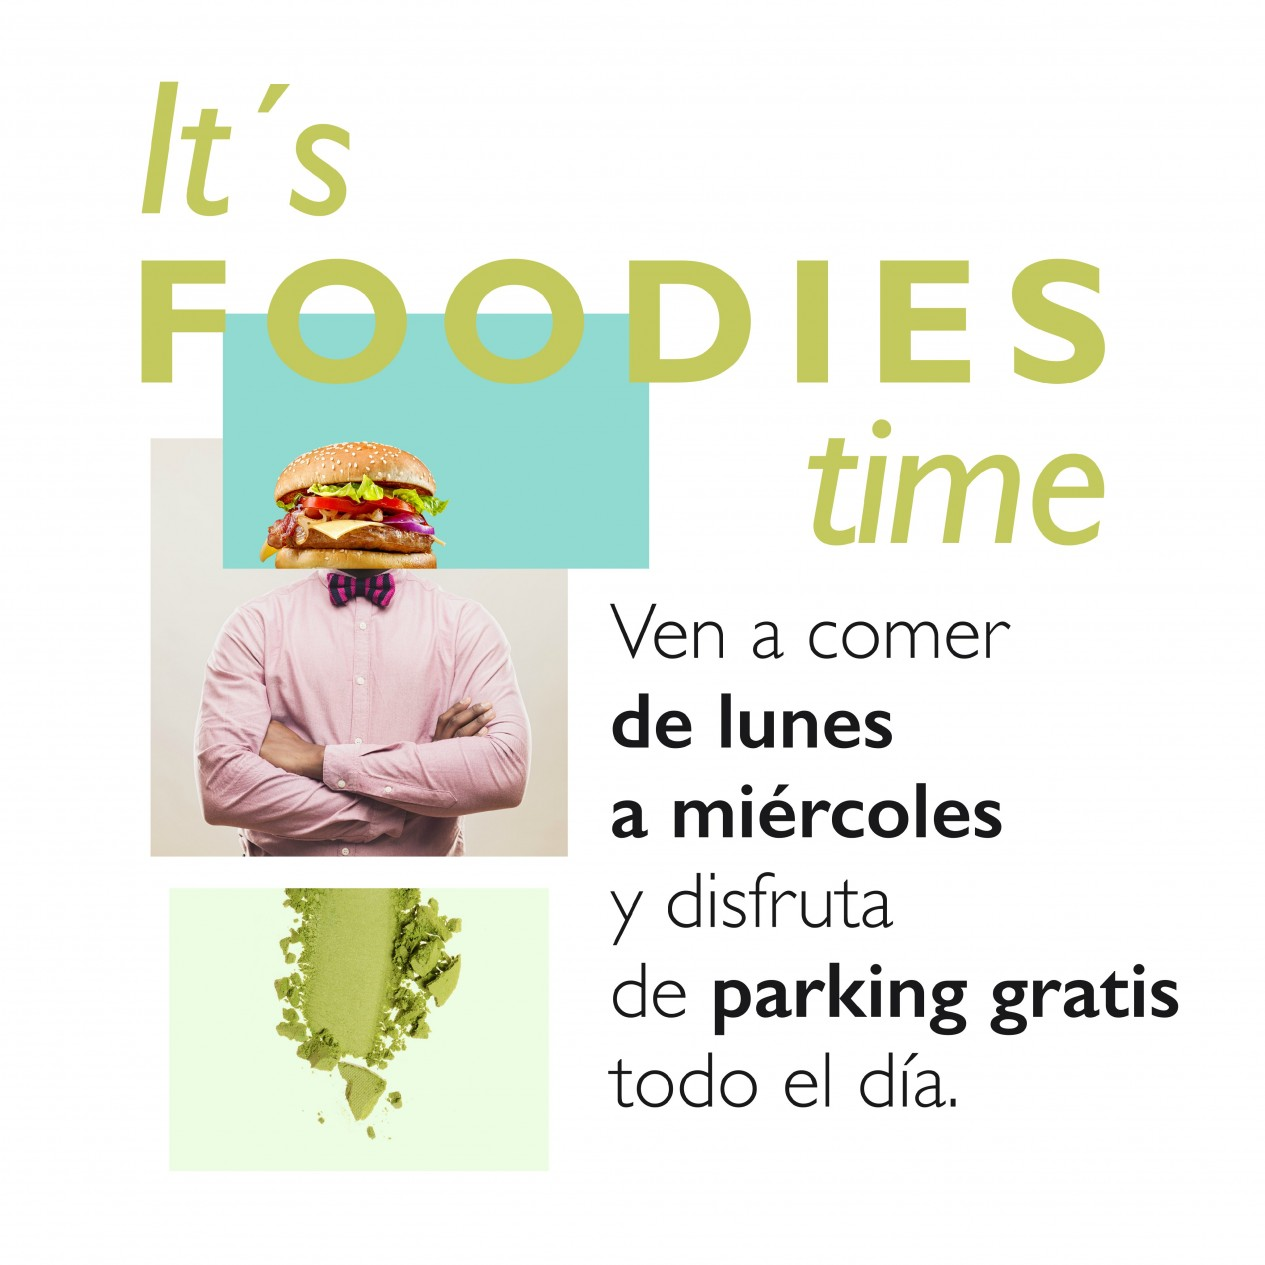 moraleja green-foodies time